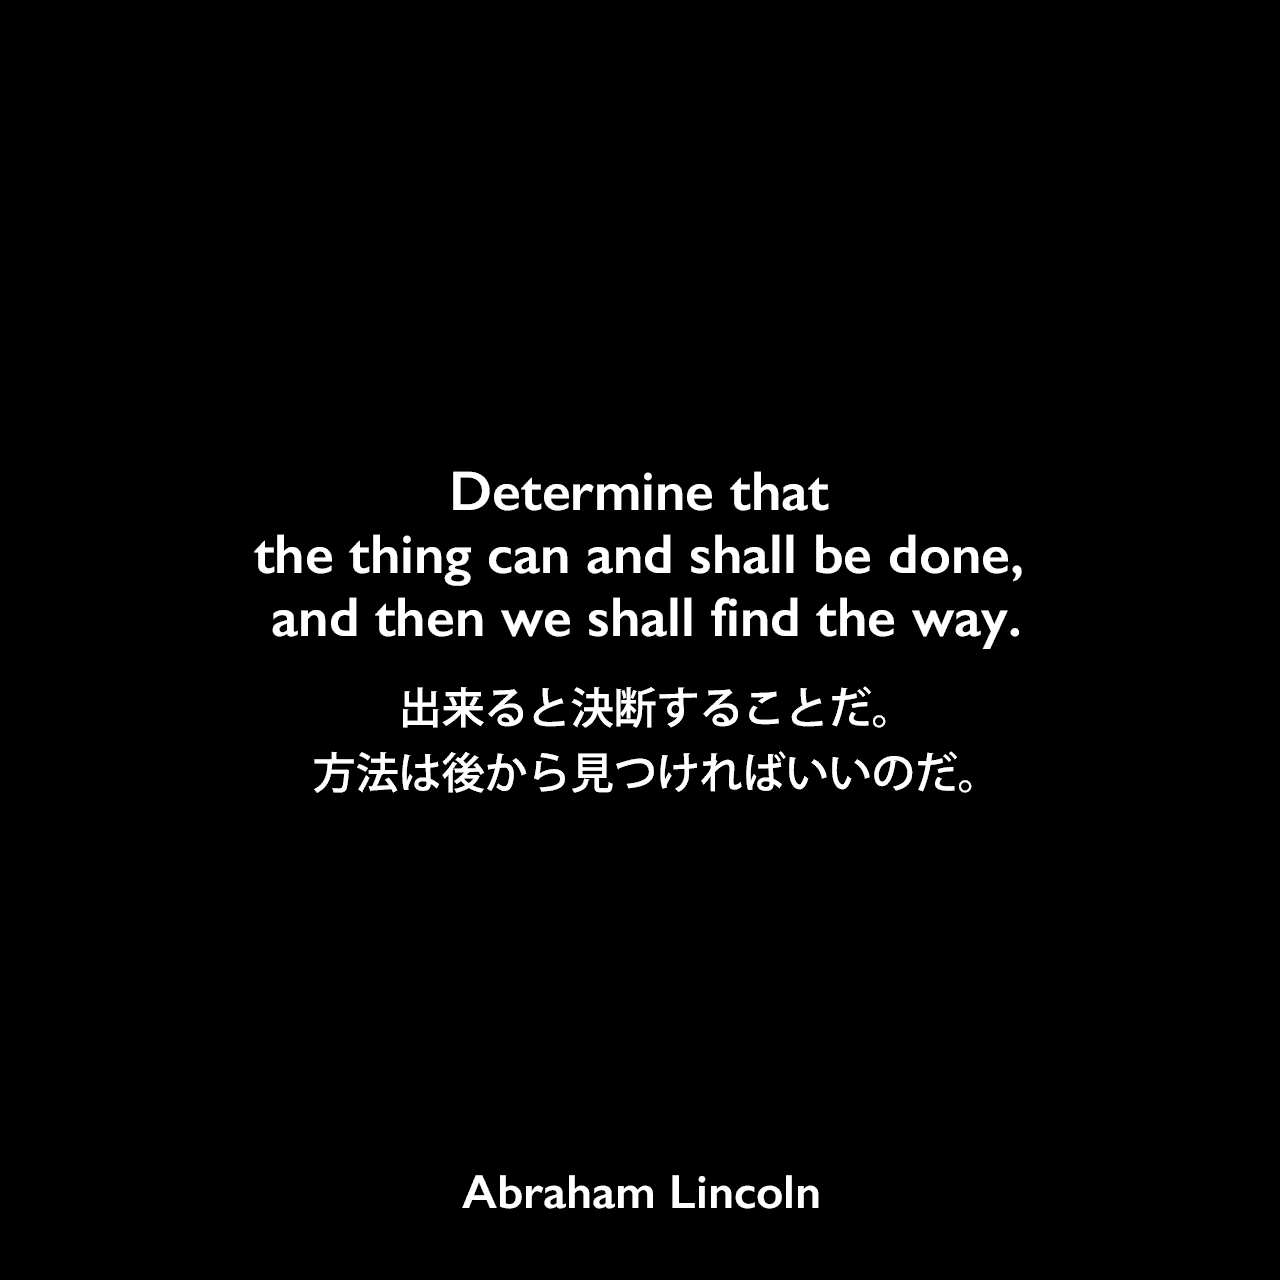 Determine that the thing can and shall be done, and then we shall find the way.出来ると決断することだ。方法は後から見つければいいのだ。- リンカーンのスピーチ(1848年)よりAbraham Lincoln